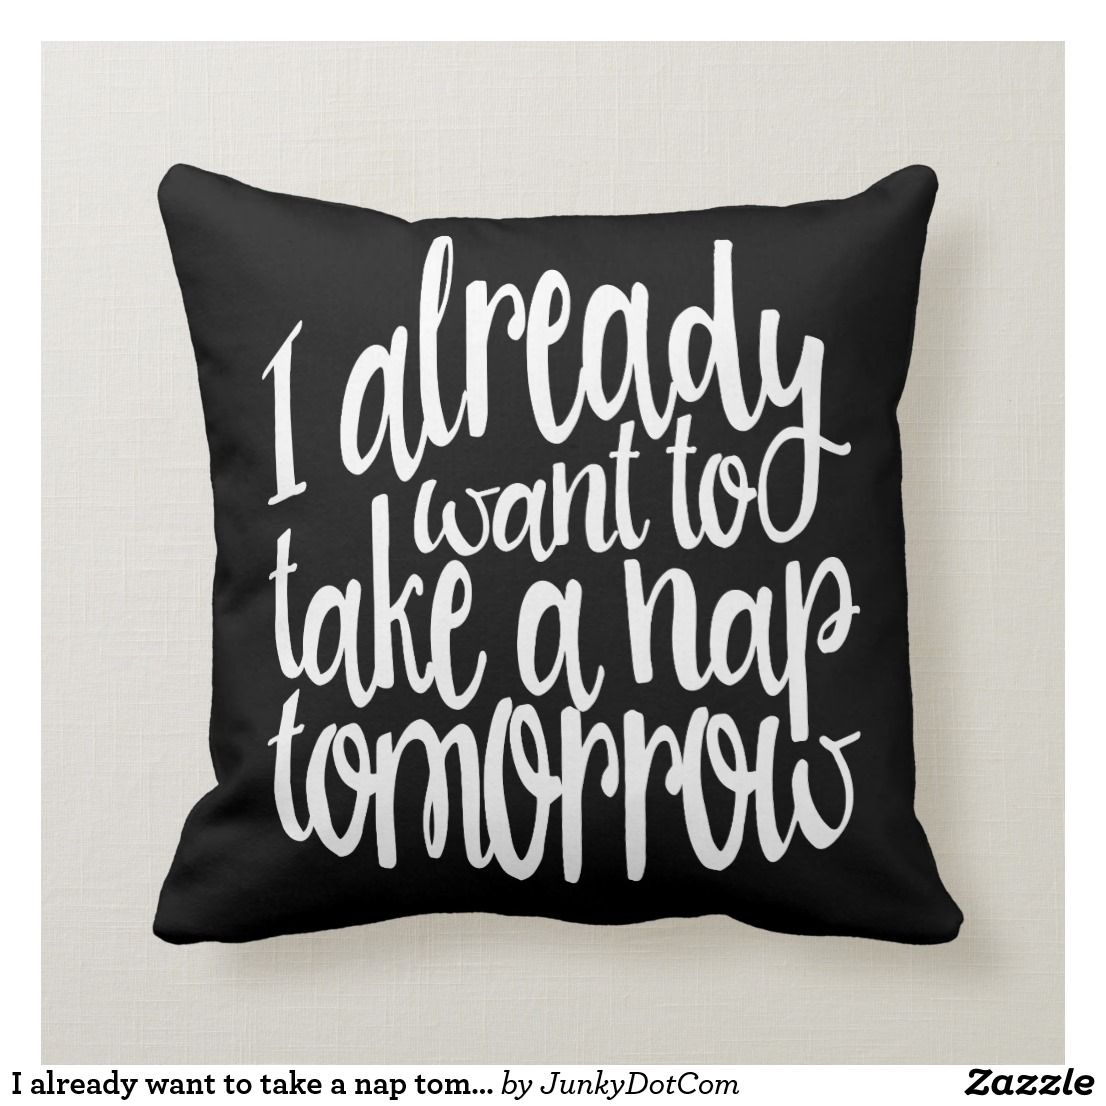 Funny Decorative & Throw Pillows | Zazzle